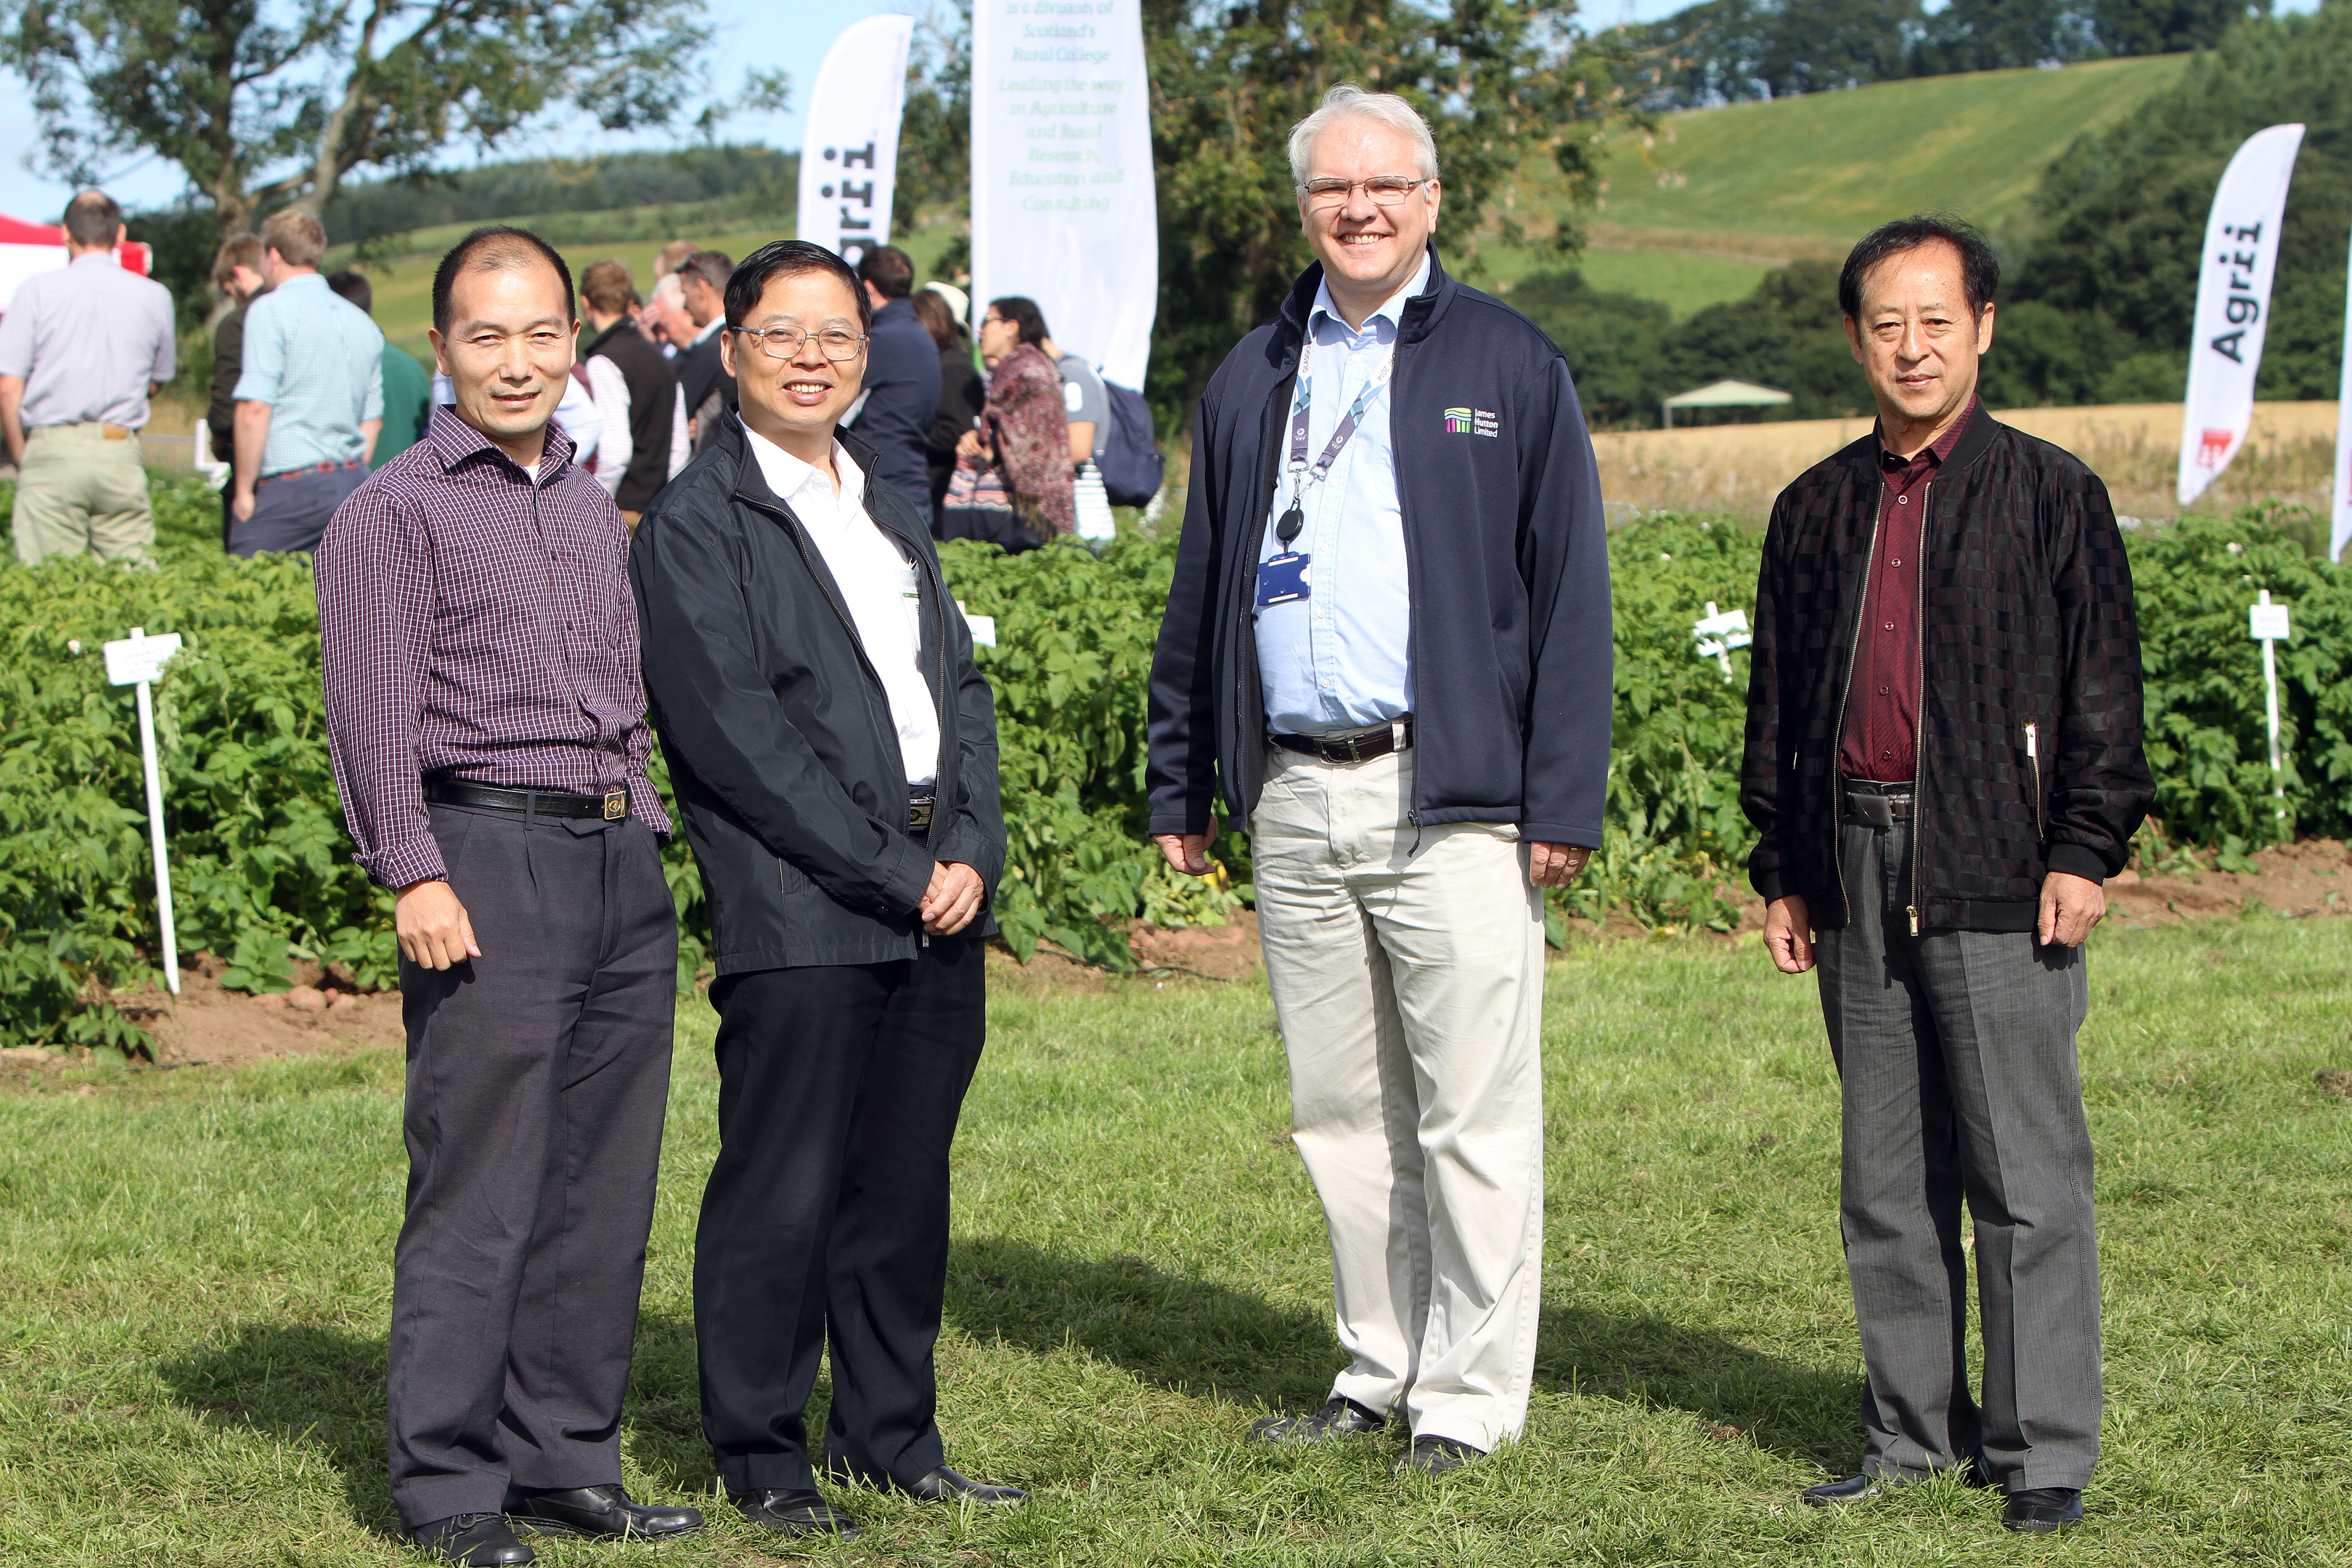 Scientists from Dundee will work alongside Chinese researchers to breed new varieties  and improve tuber storage and processing